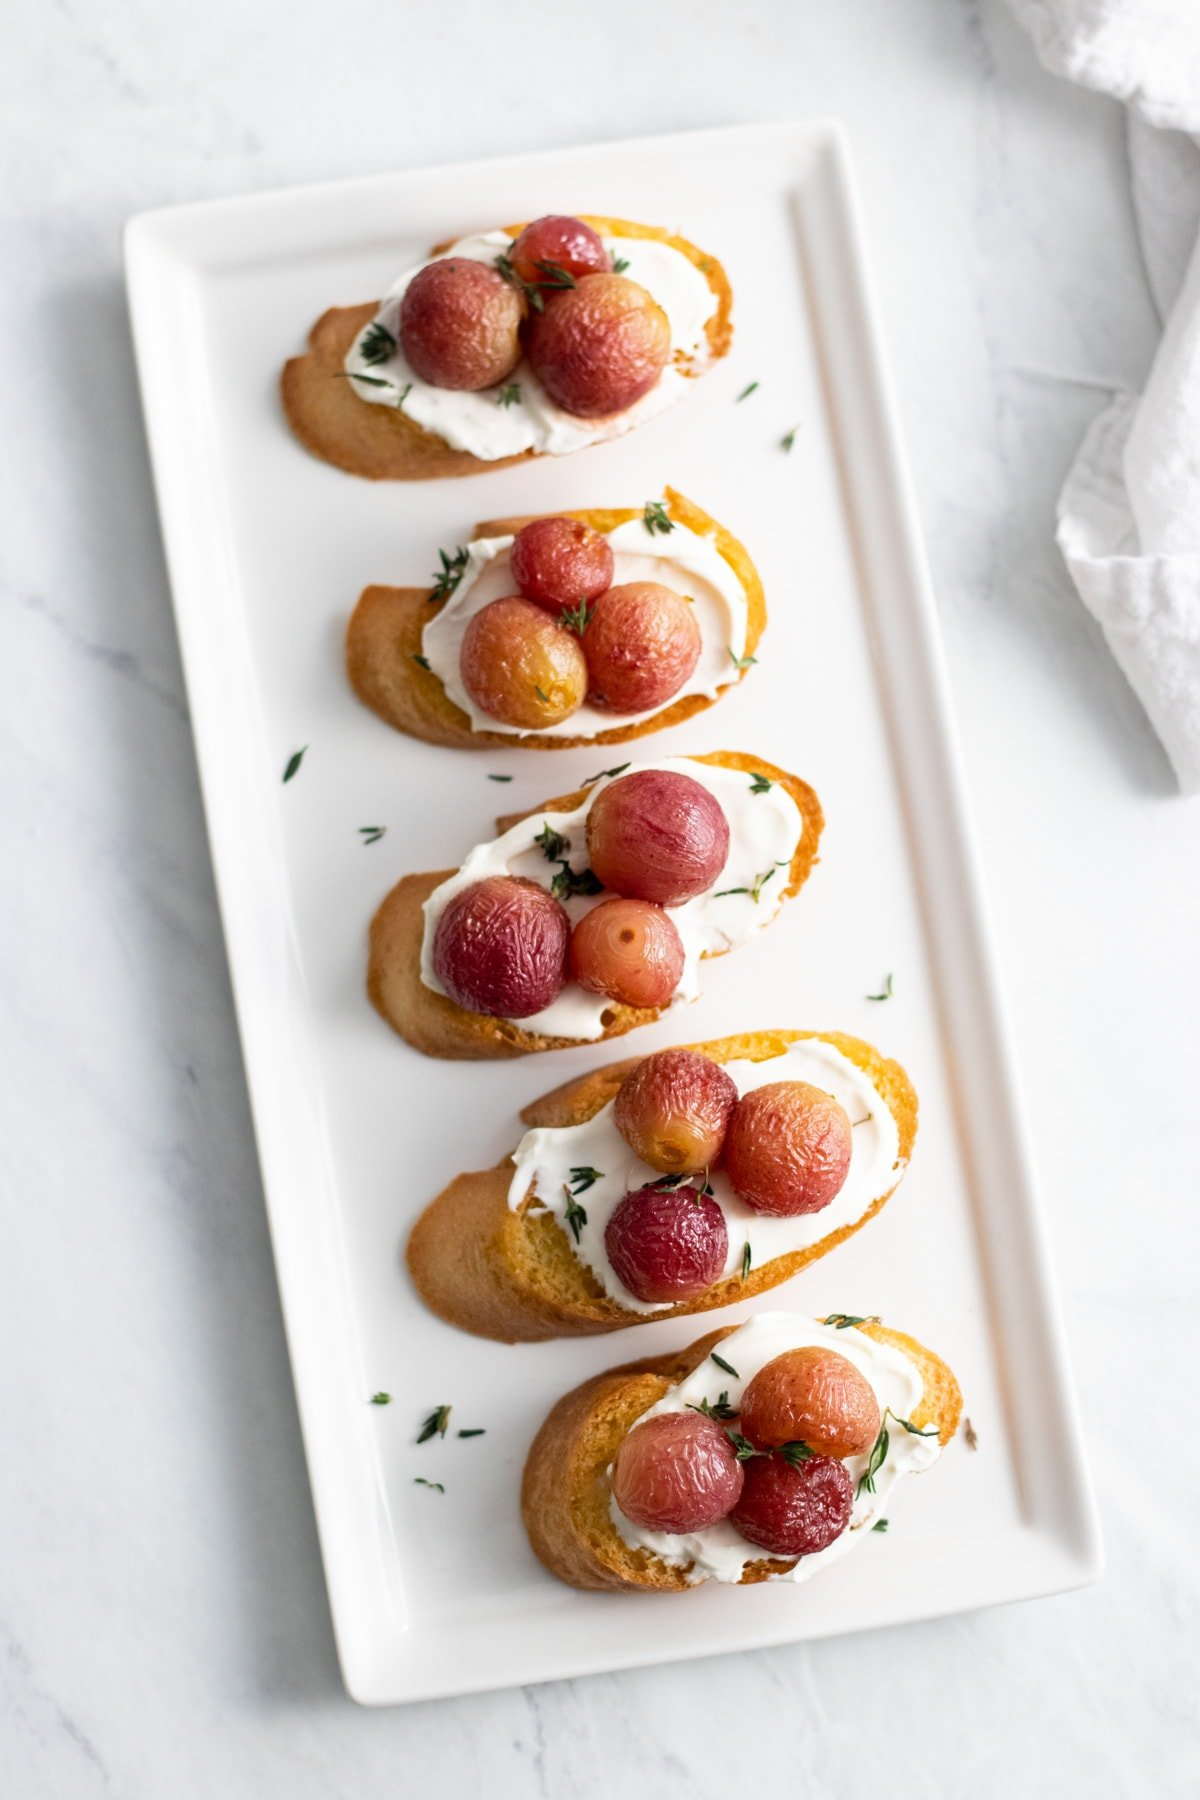 A rectangular platter with five toasted baguette slices topped with cream cheese, roasted grapes, and fresh thyme leaves.